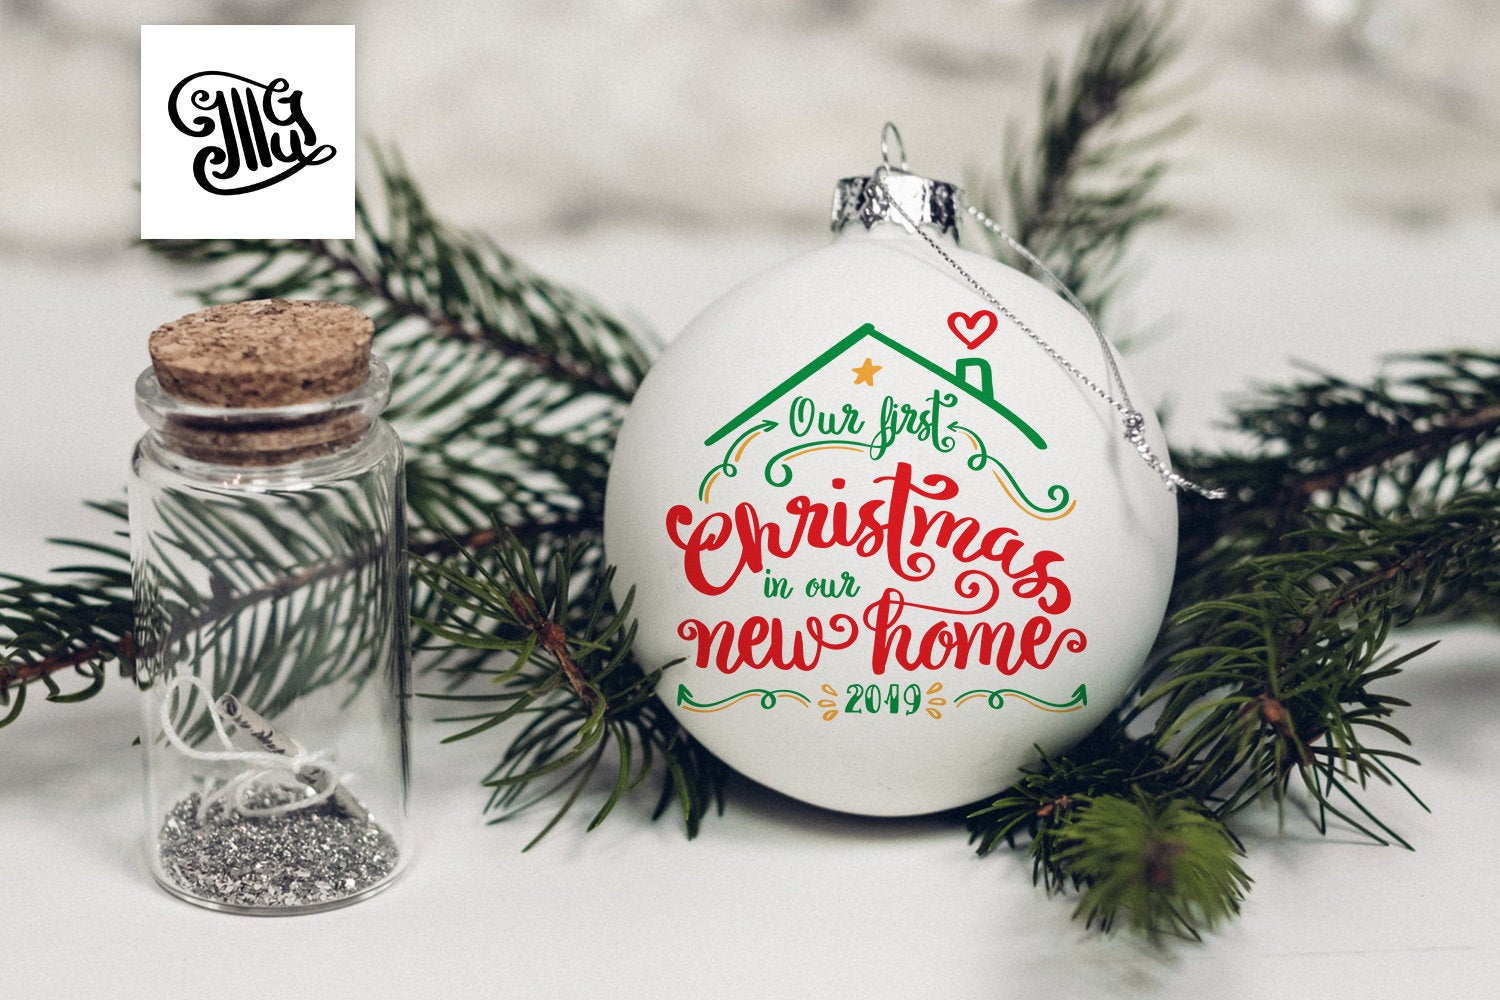 First Christmas in our new home ornament svg, DIGITAL FILES, first house ornament svg, Christmas ornaments svg, our first christmas svg-by Illustrator Guru